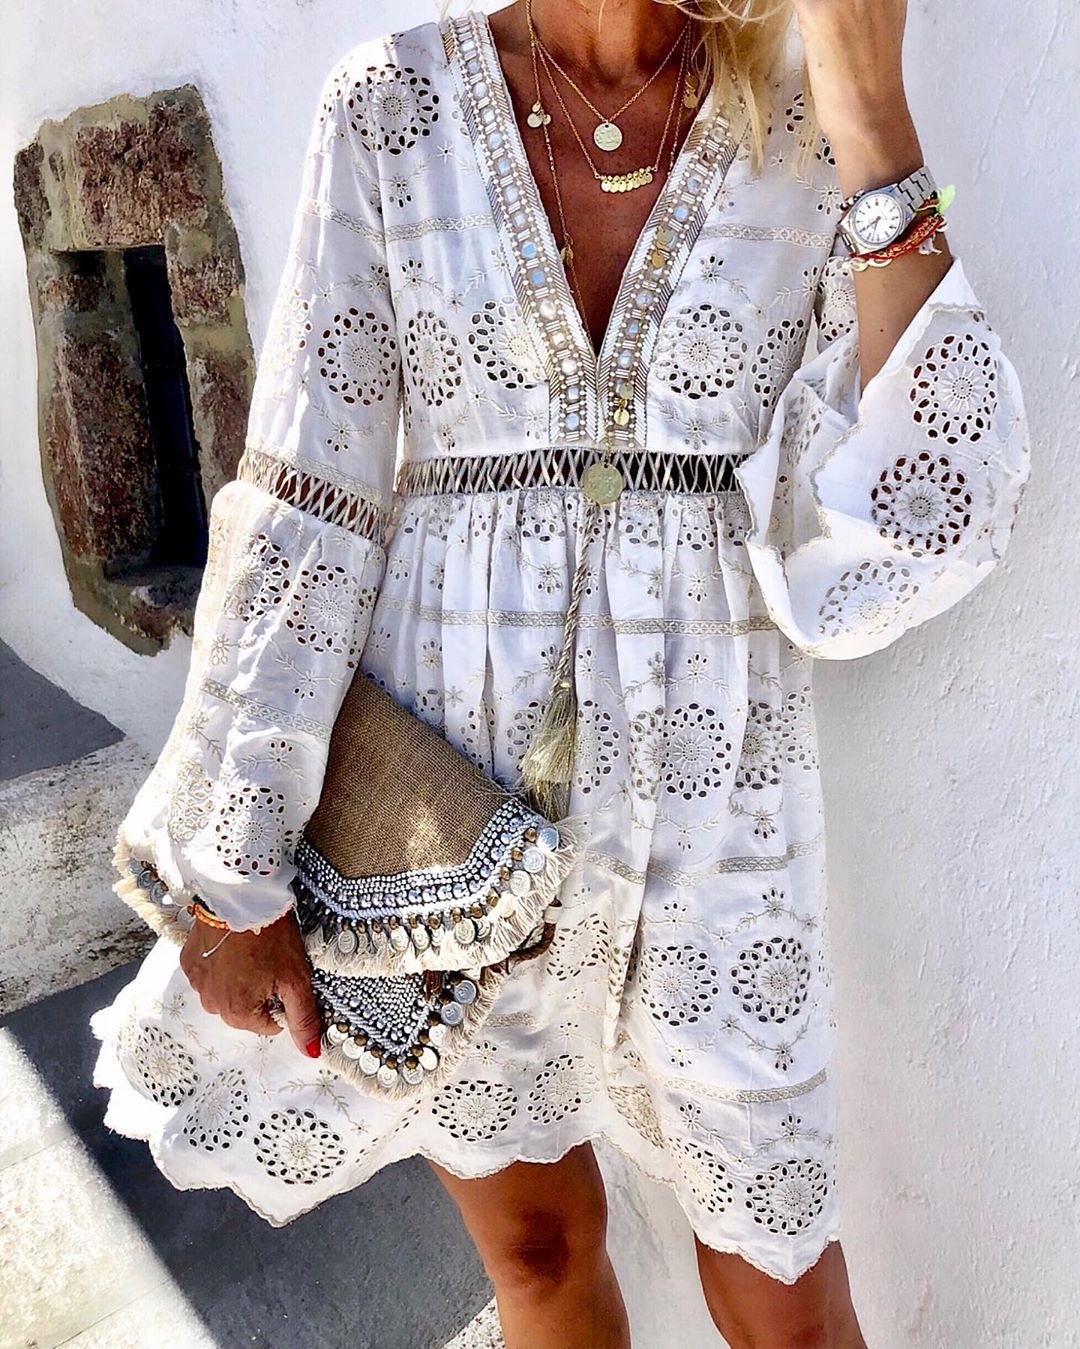 Sexy Lace Summer Dress Women 2020 Fall Long Sleeve Hollow Out V-Neck A-Line Mini Dresses Casual Loose Beach Short Dress